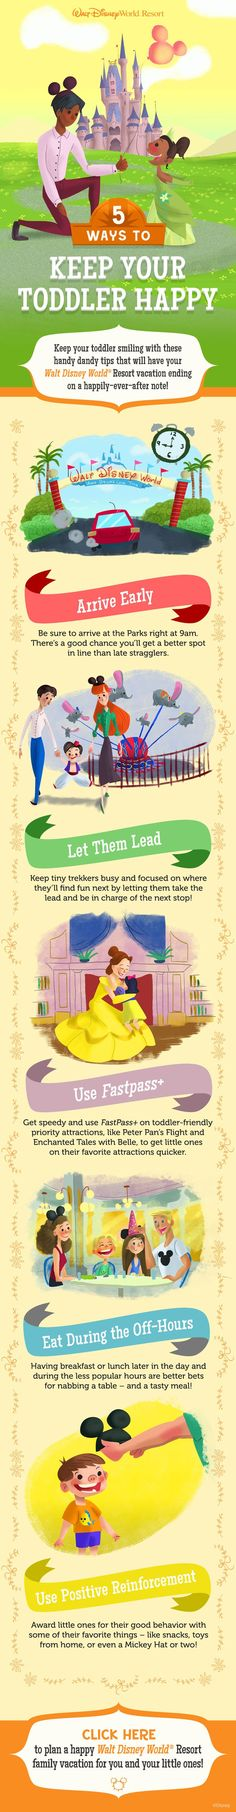 5 ways to keep your toddler happy at Walt Disney World!    Disney Vacation   Disney Vacation Tips   Disney Planning Tips   Disney World Planning   Disney World with Kids  